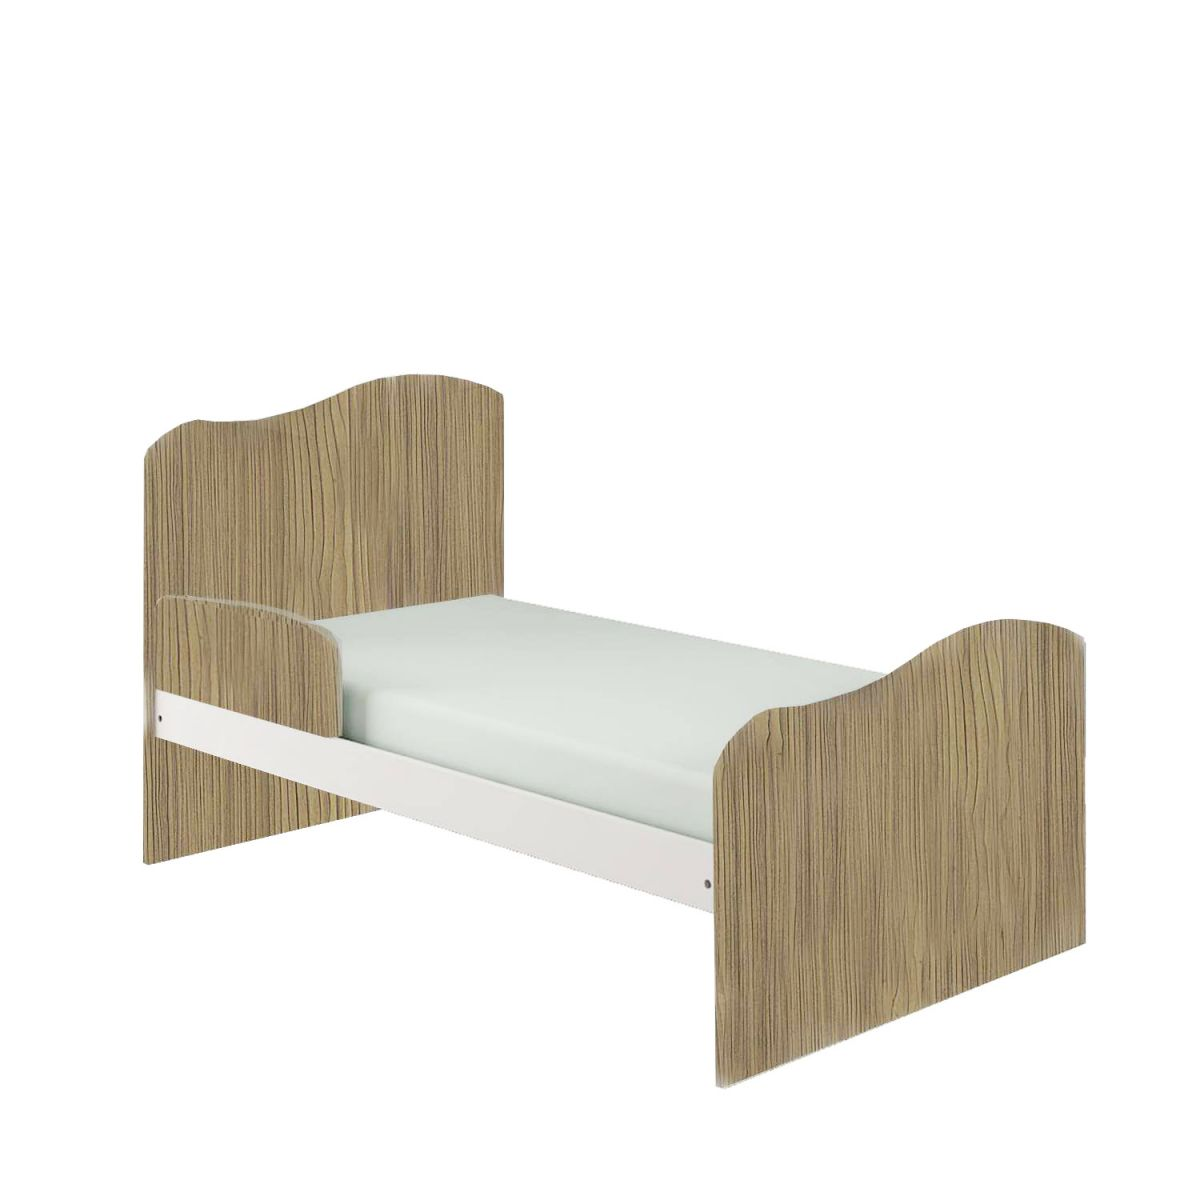 Berço Mini Cama Munique Wengue - Canaã